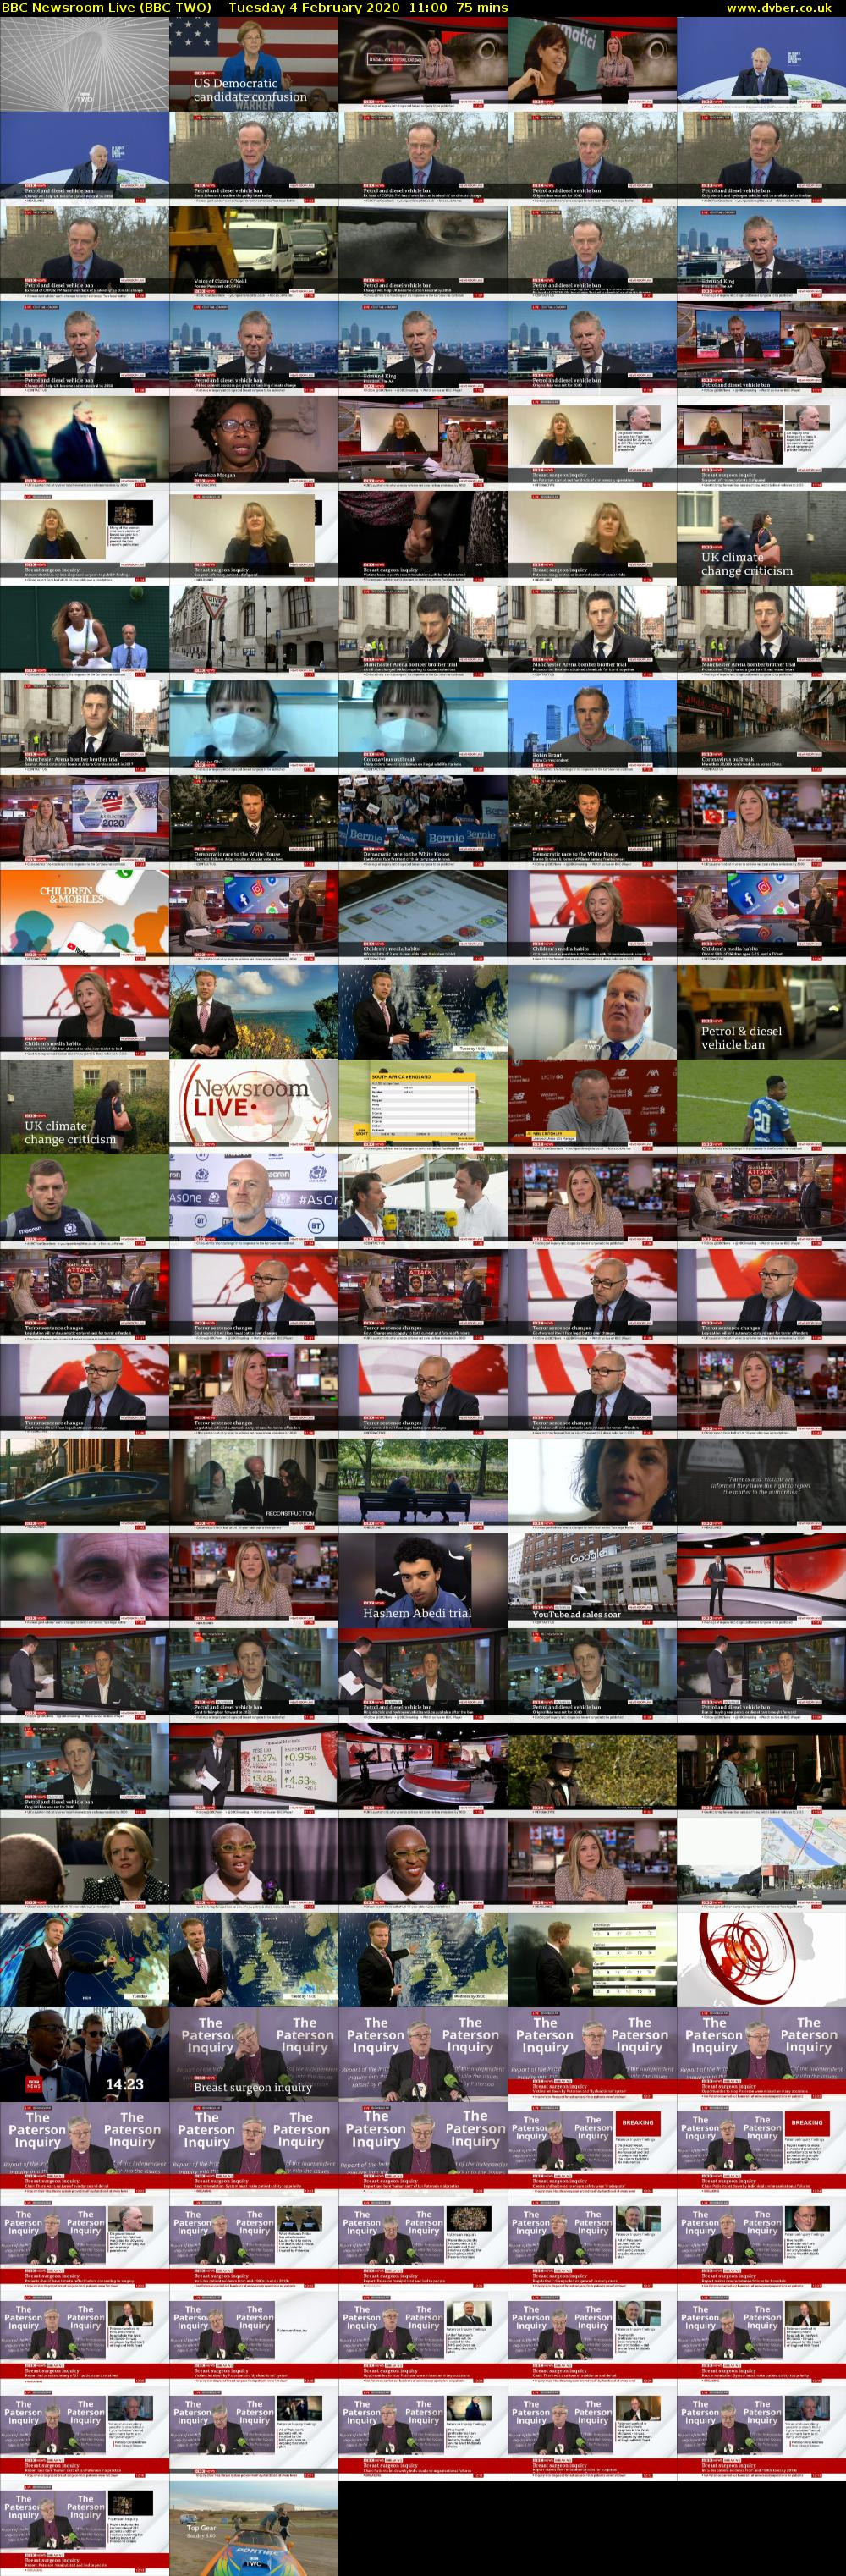 BBC Newsroom Live (BBC TWO) Tuesday 4 February 2020 11:00 - 12:15